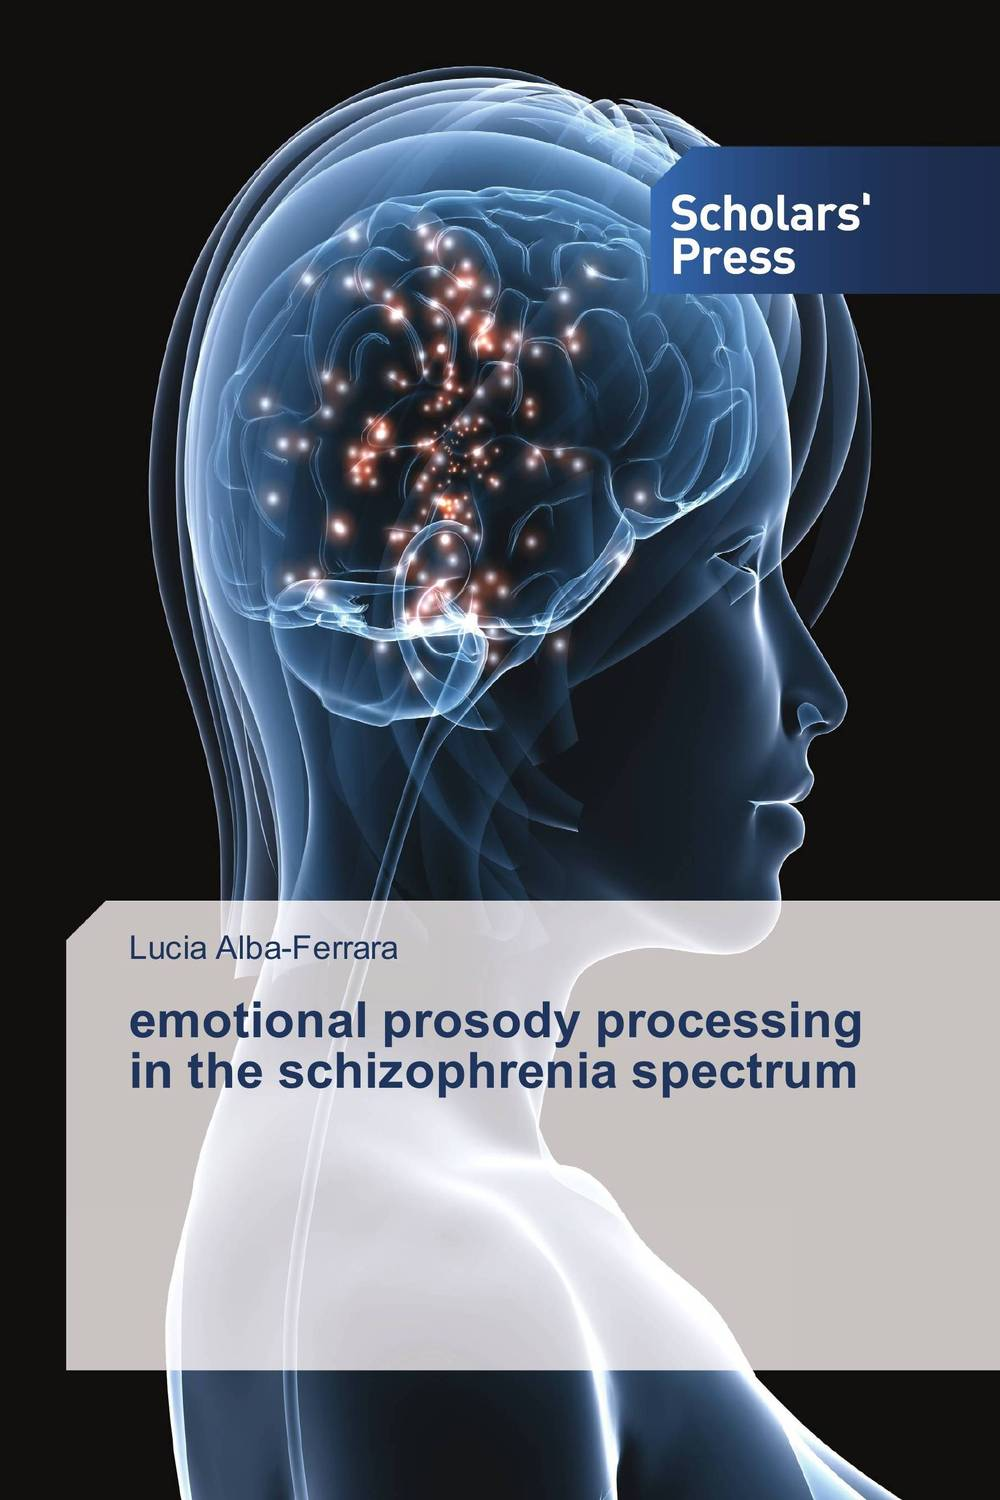 emotional prosody processing in the schizophrenia spectrum temporal processing of news